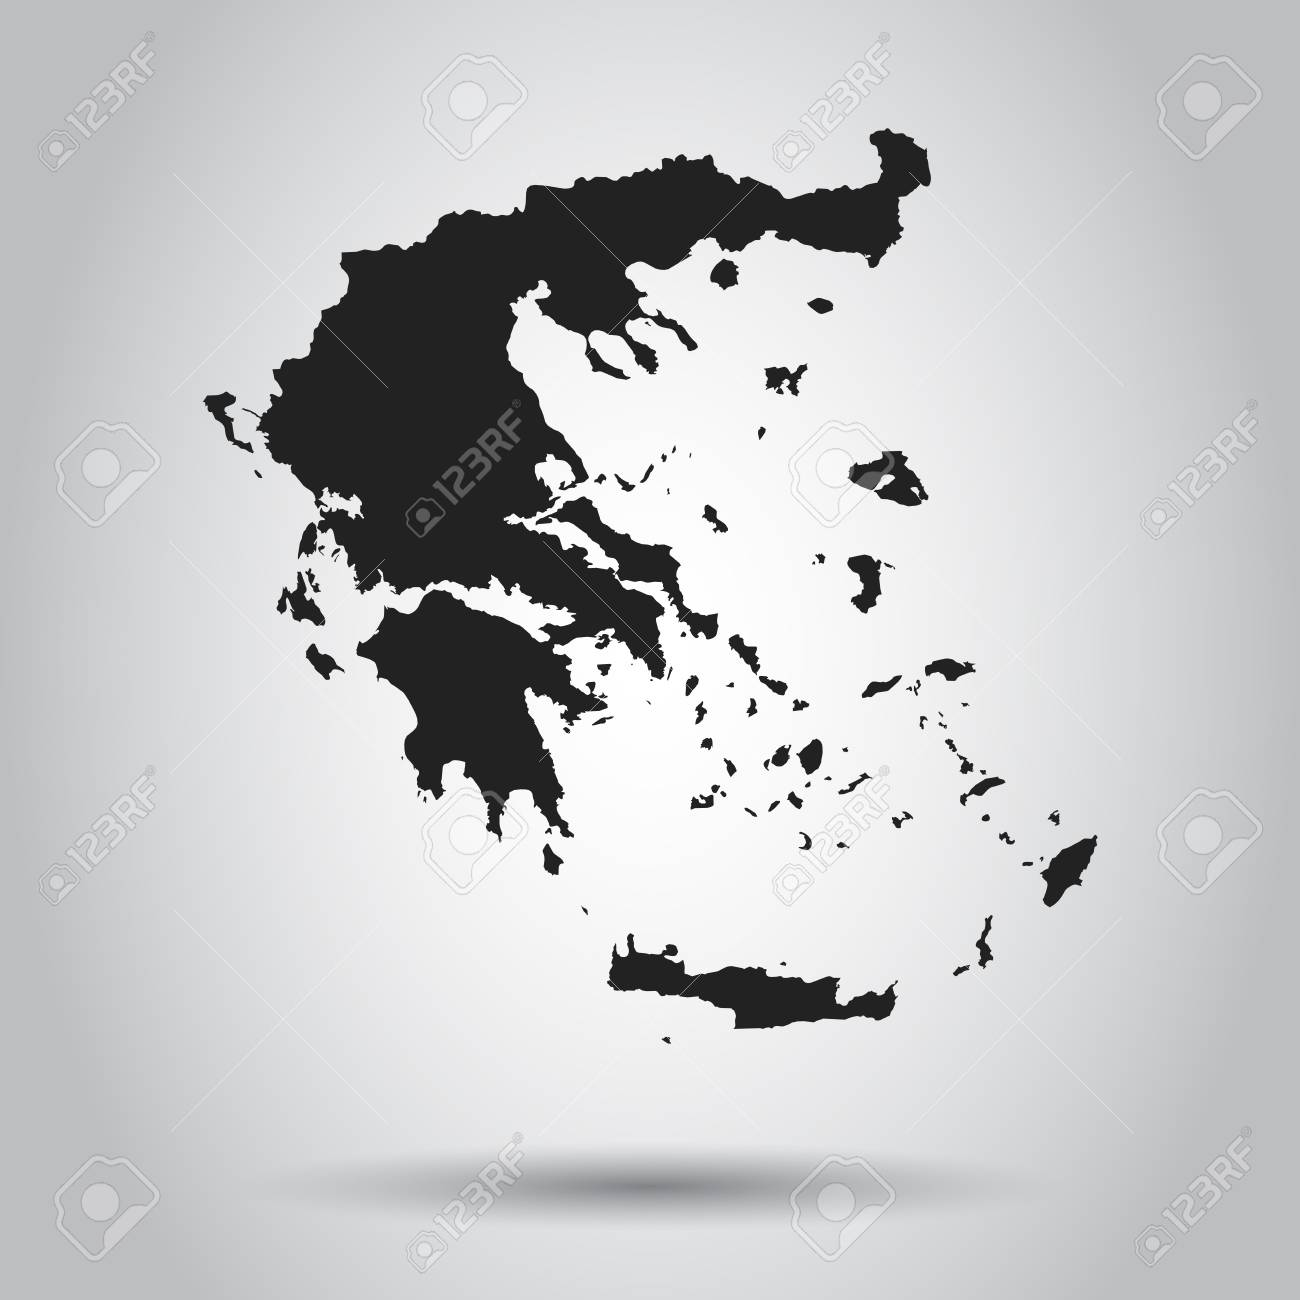 Greece vector map black icon on white background royalty free greece vector map black icon on white background stock vector 96524393 gumiabroncs Image collections